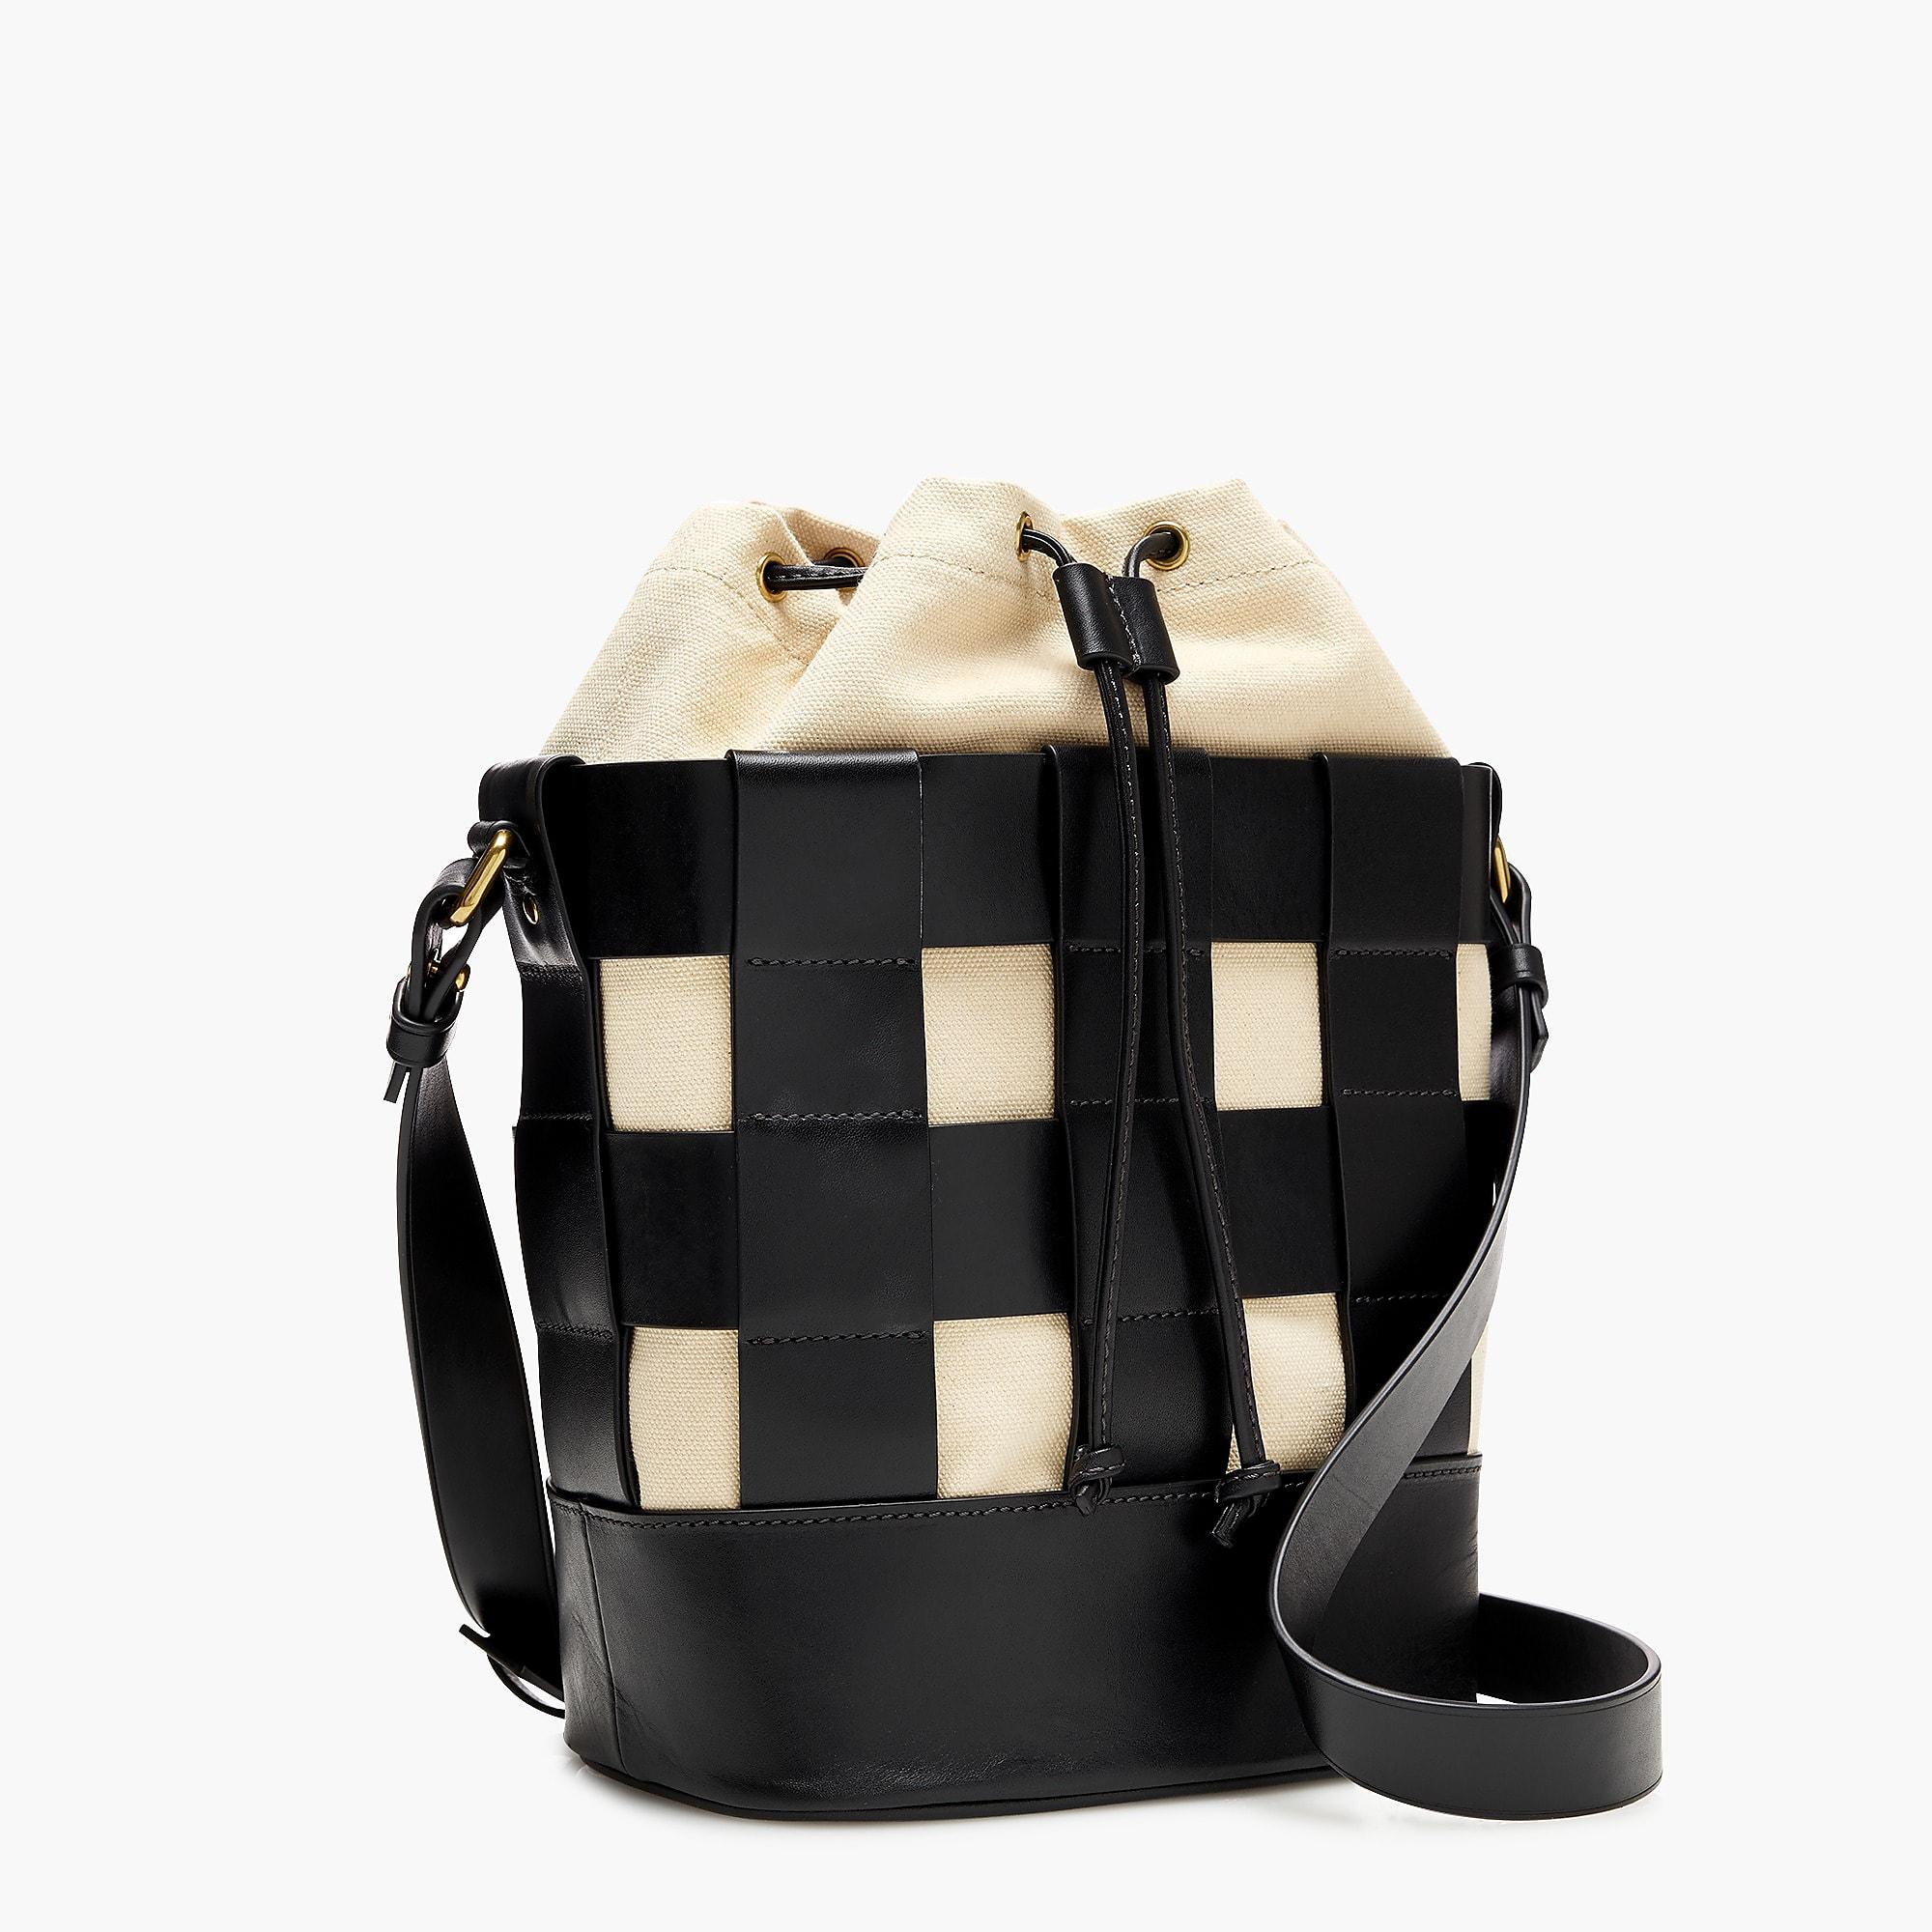 23c4d3599c Lyst - J.Crew Woven Leather-and-canvas Bucket Bag in Black